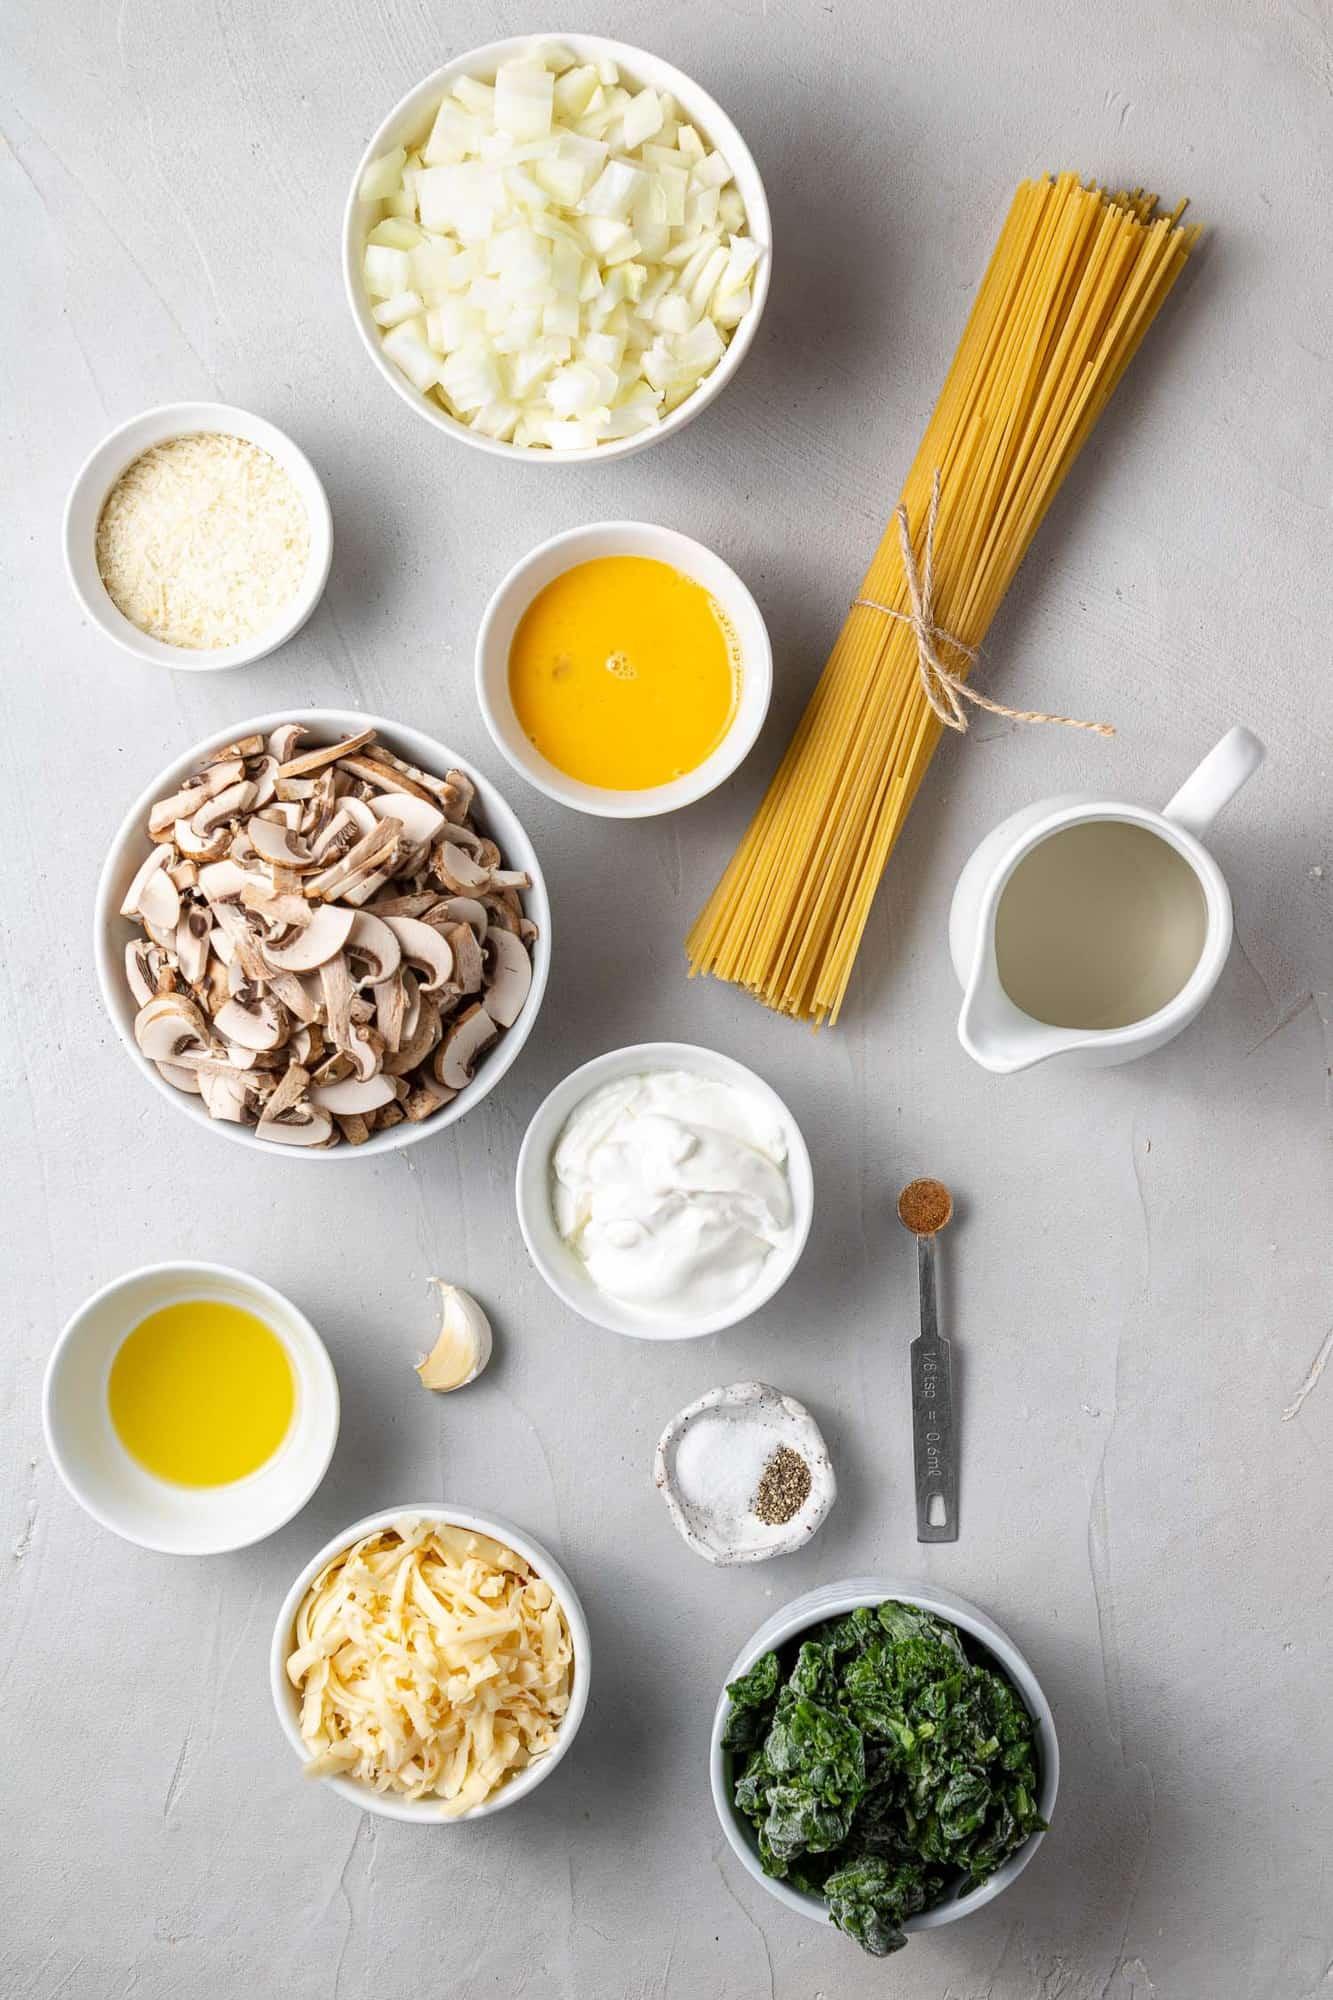 Overhead view of ingredients needed for recipe.